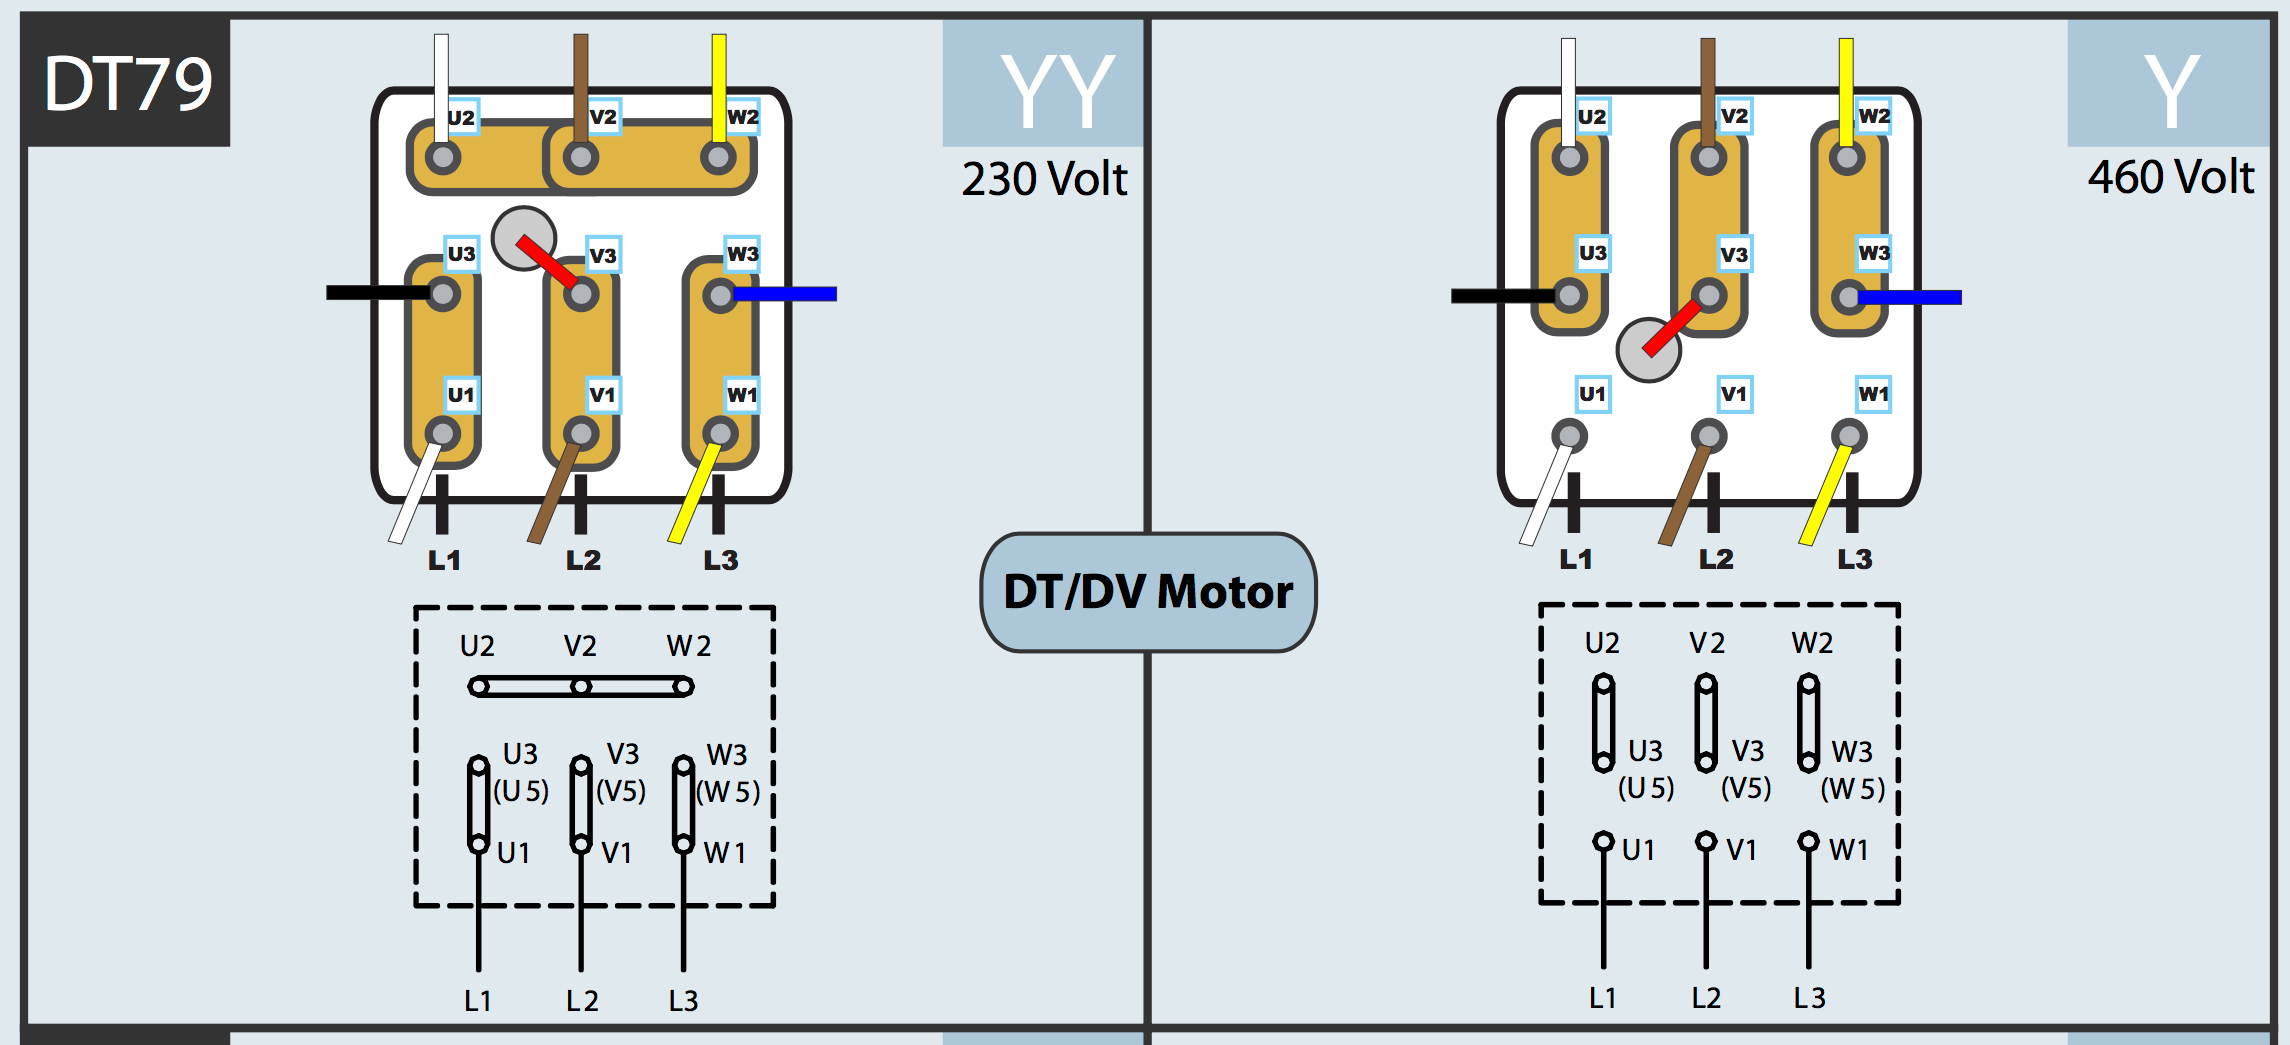 Wiring Electric Motor For Dual Belt Conveyors | Tommy Support - Electric Motor Wiring Diagram